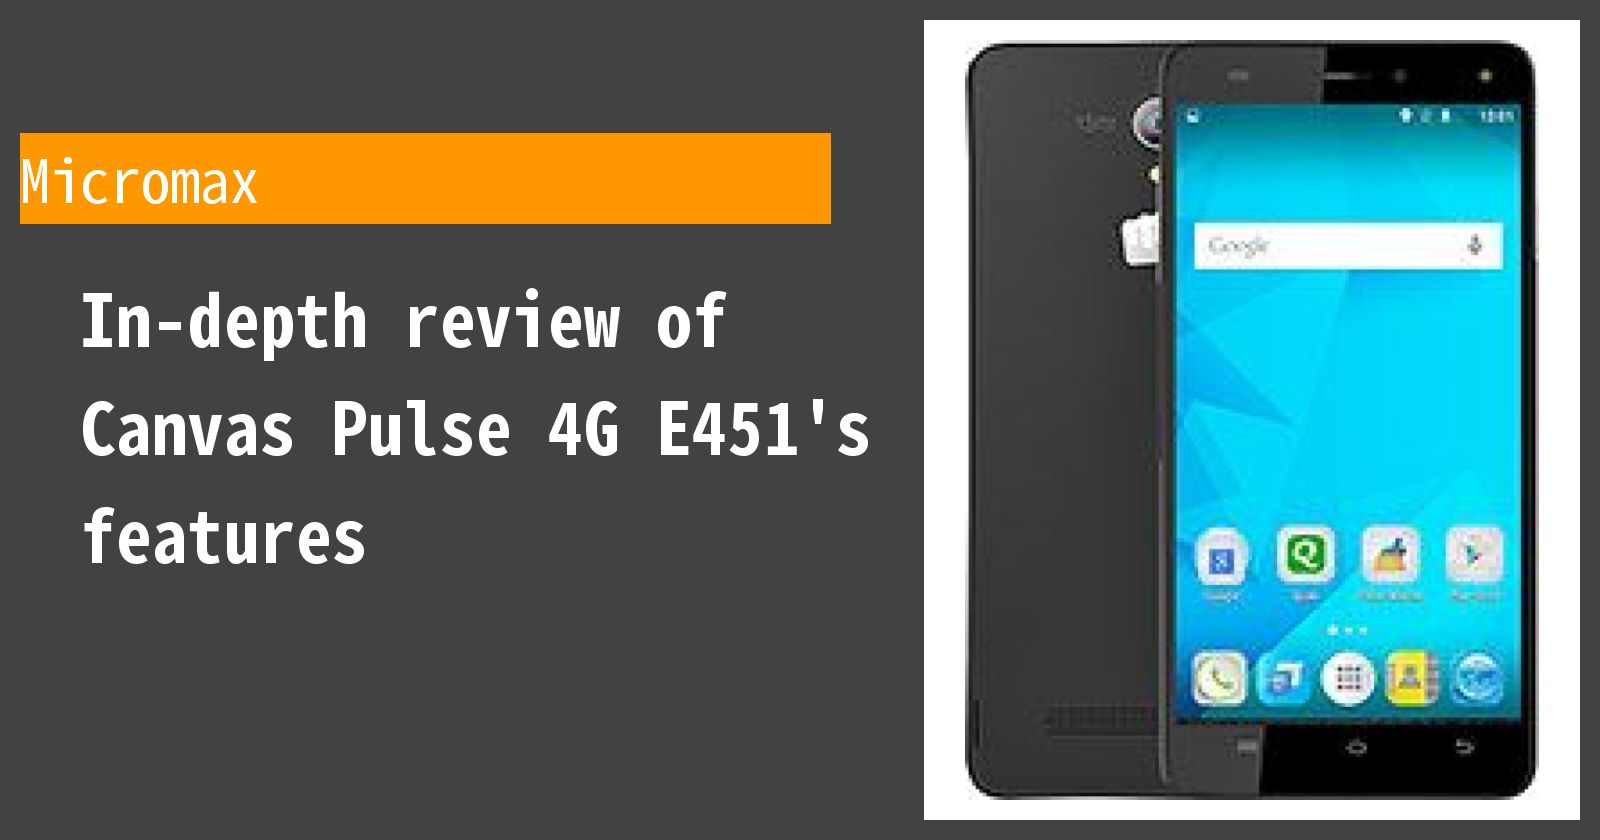 What are the advantages and disadvantages of Canvas Pulse 4G